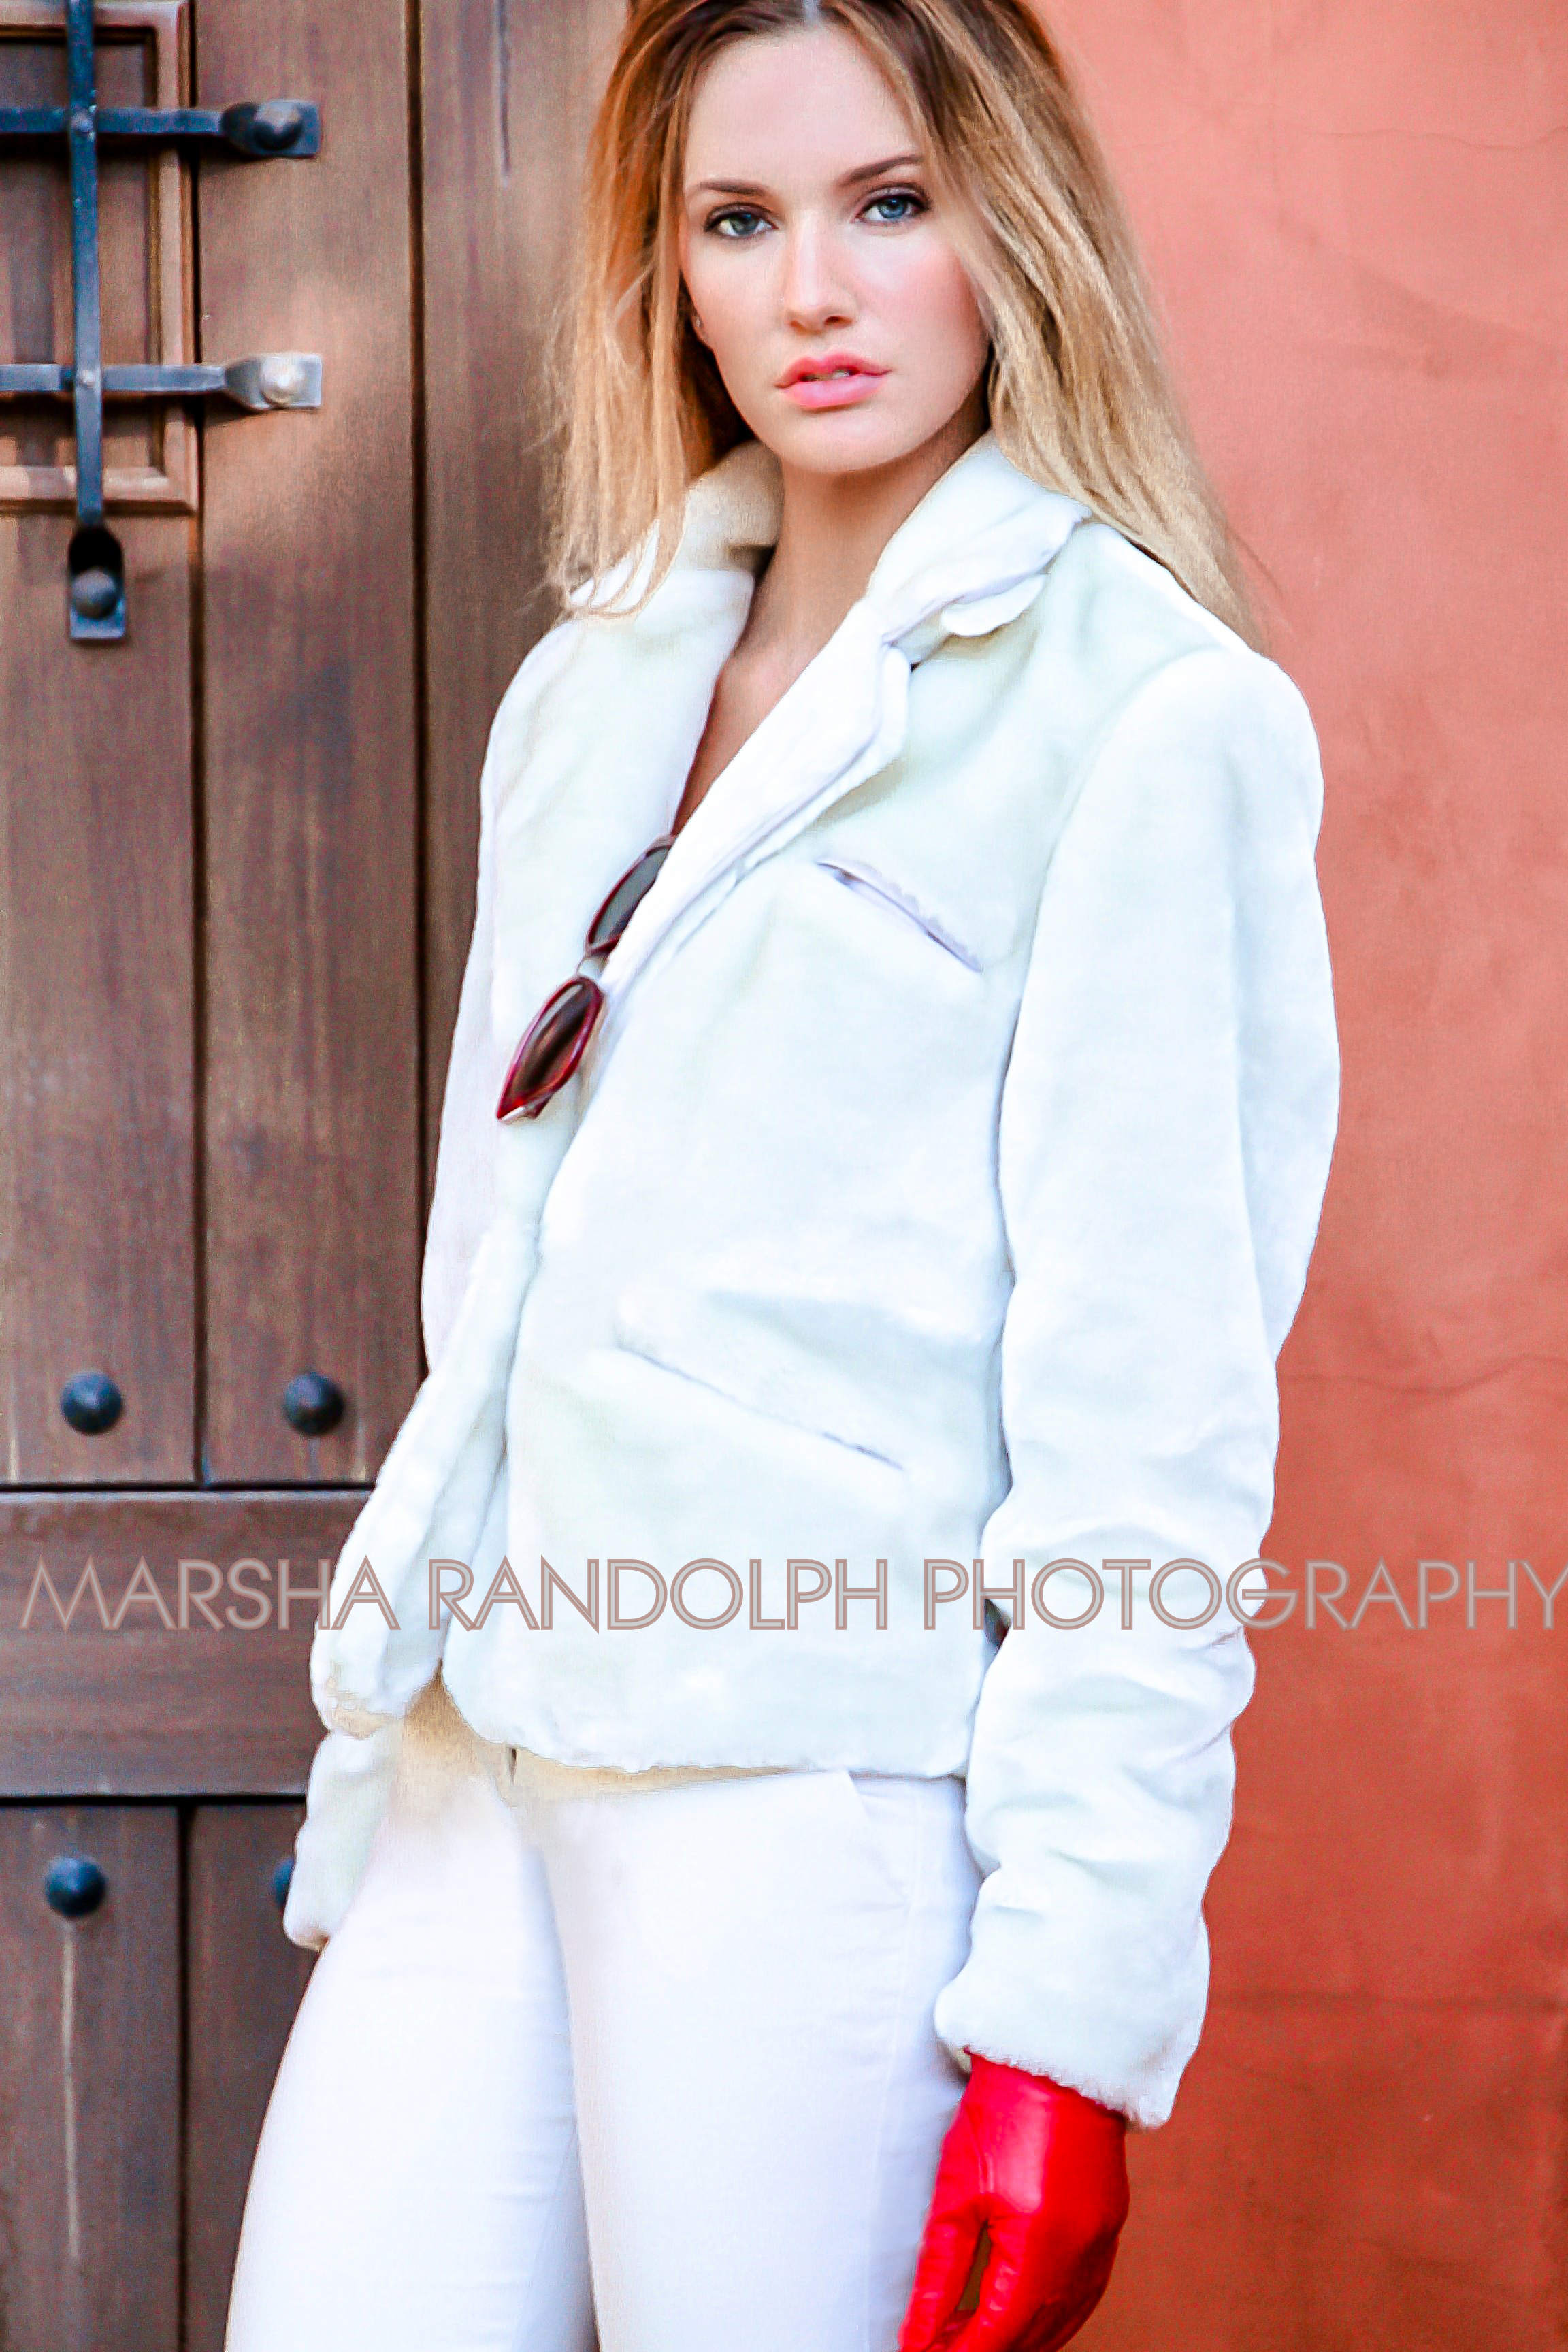 RUSTIC FASHION_Brooke and Goldie__6689 M